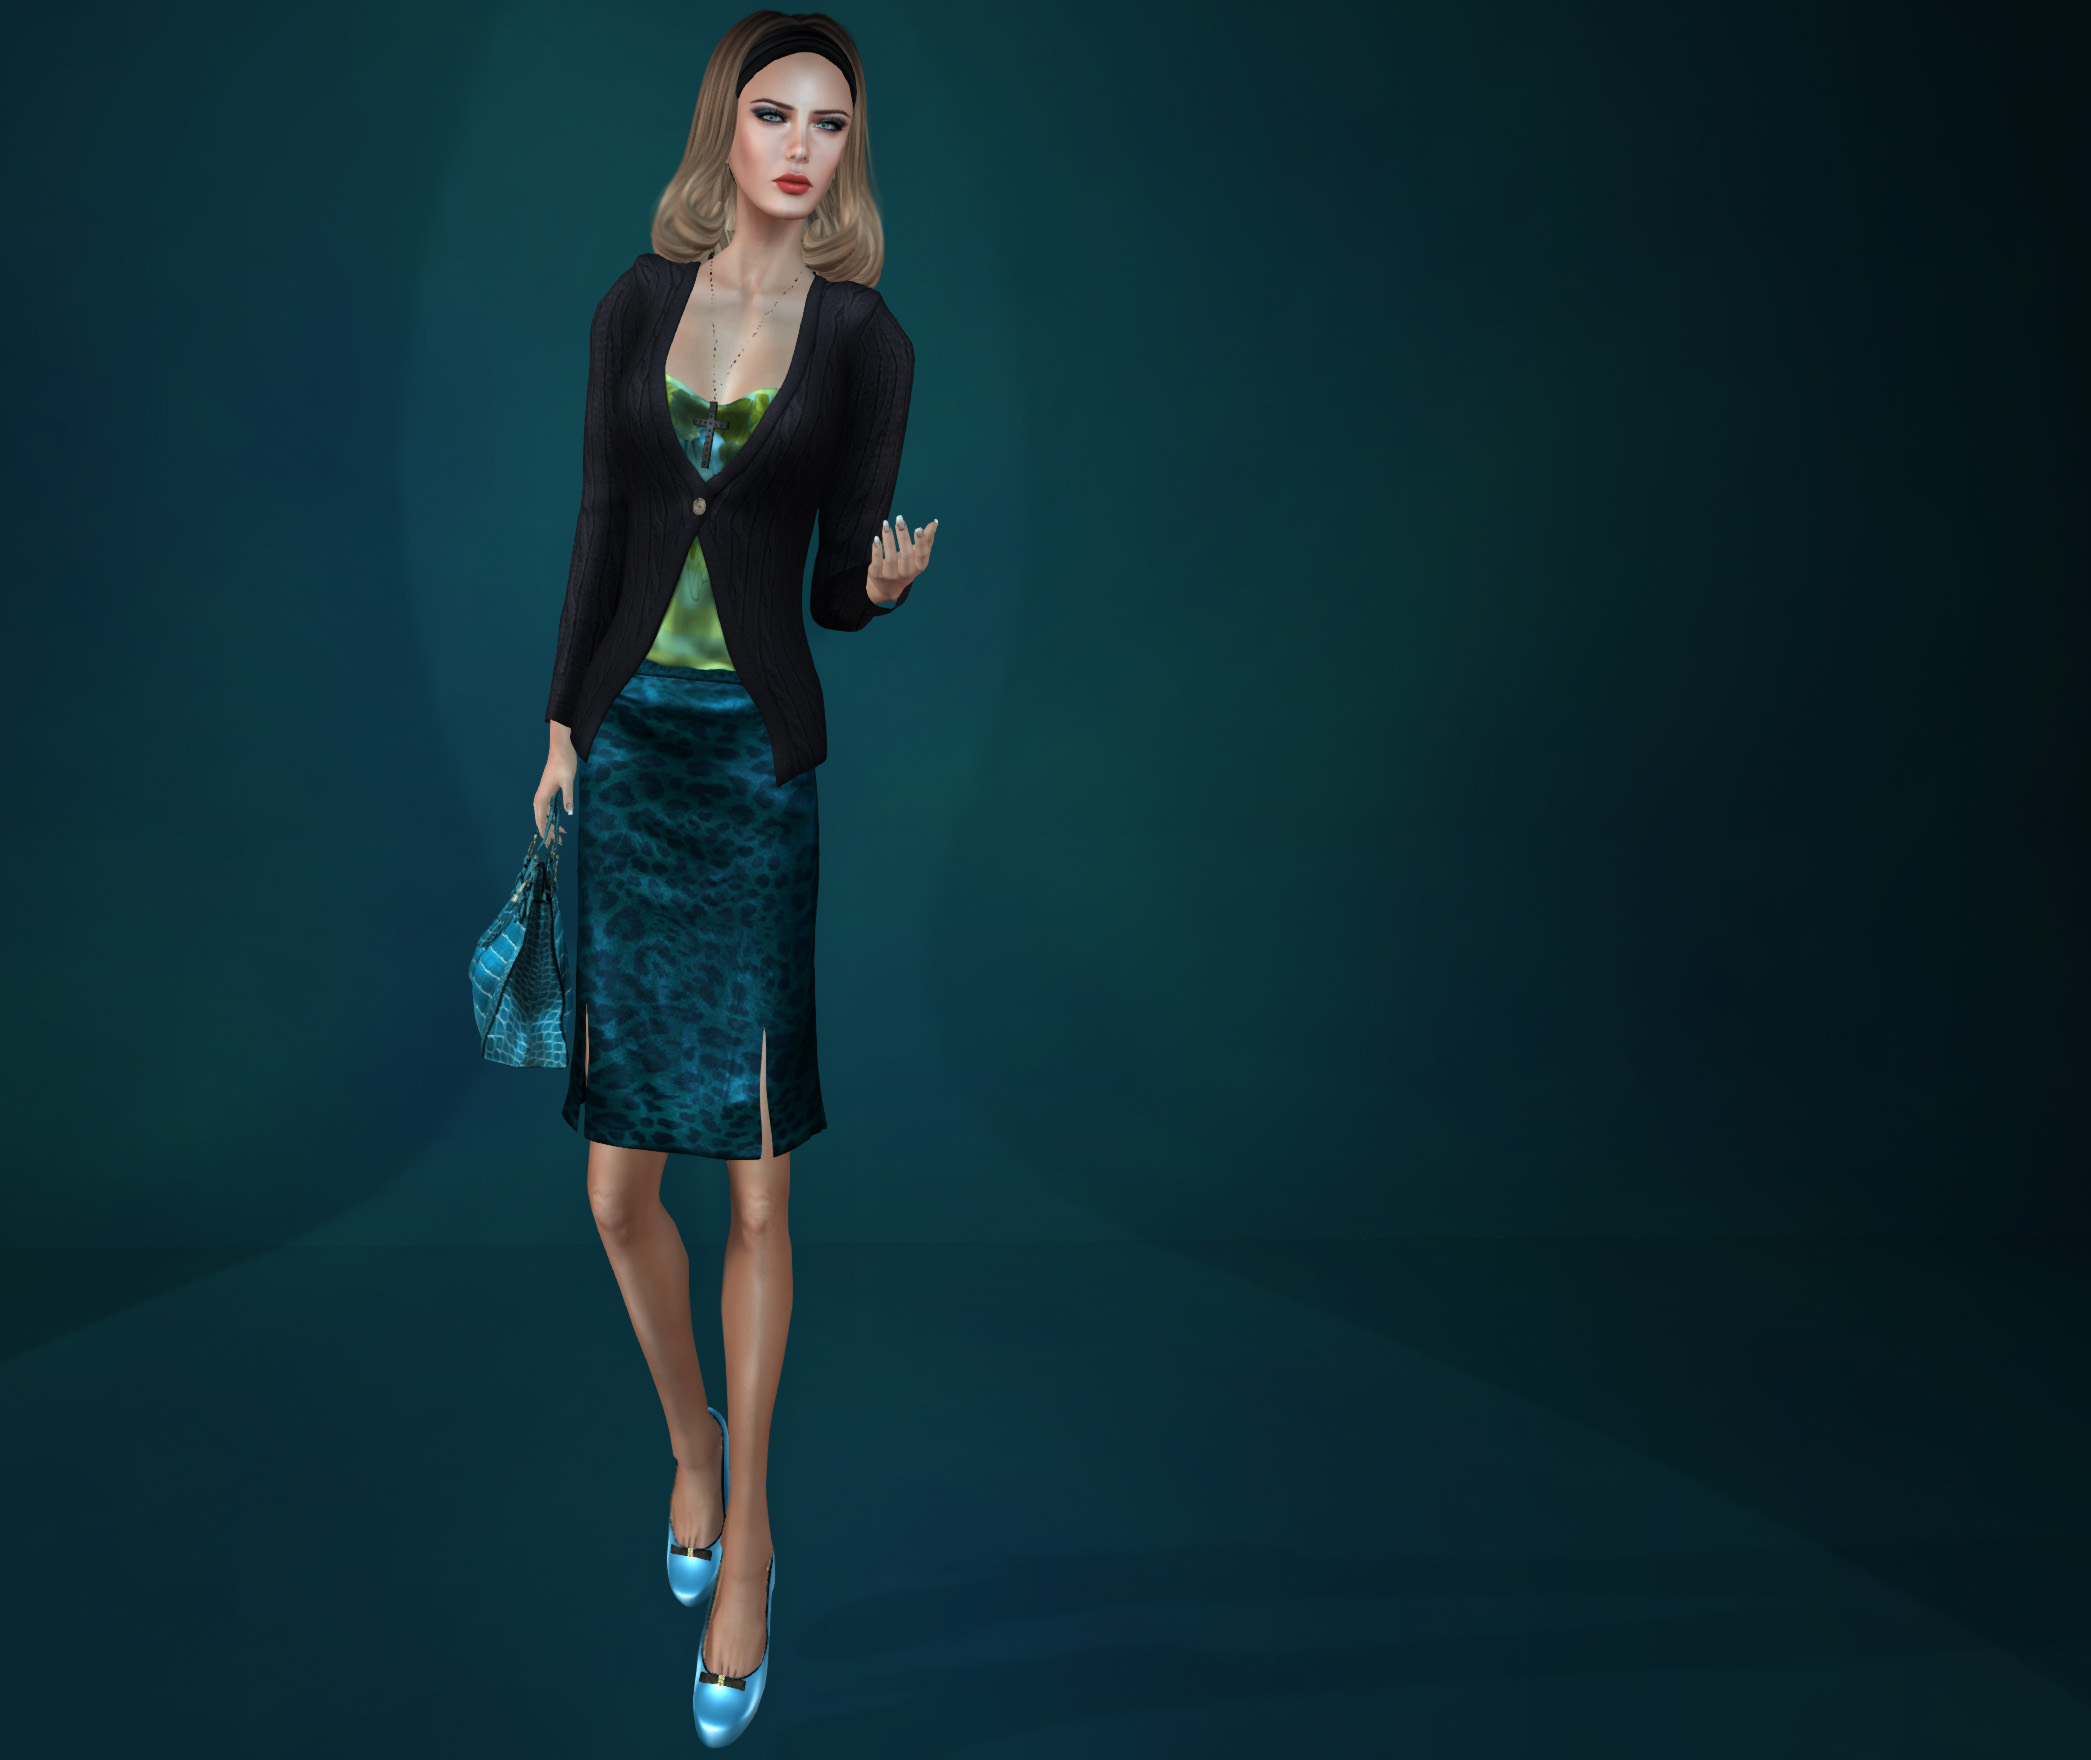 Baiastice, Vanity Hair & Nailed it 3